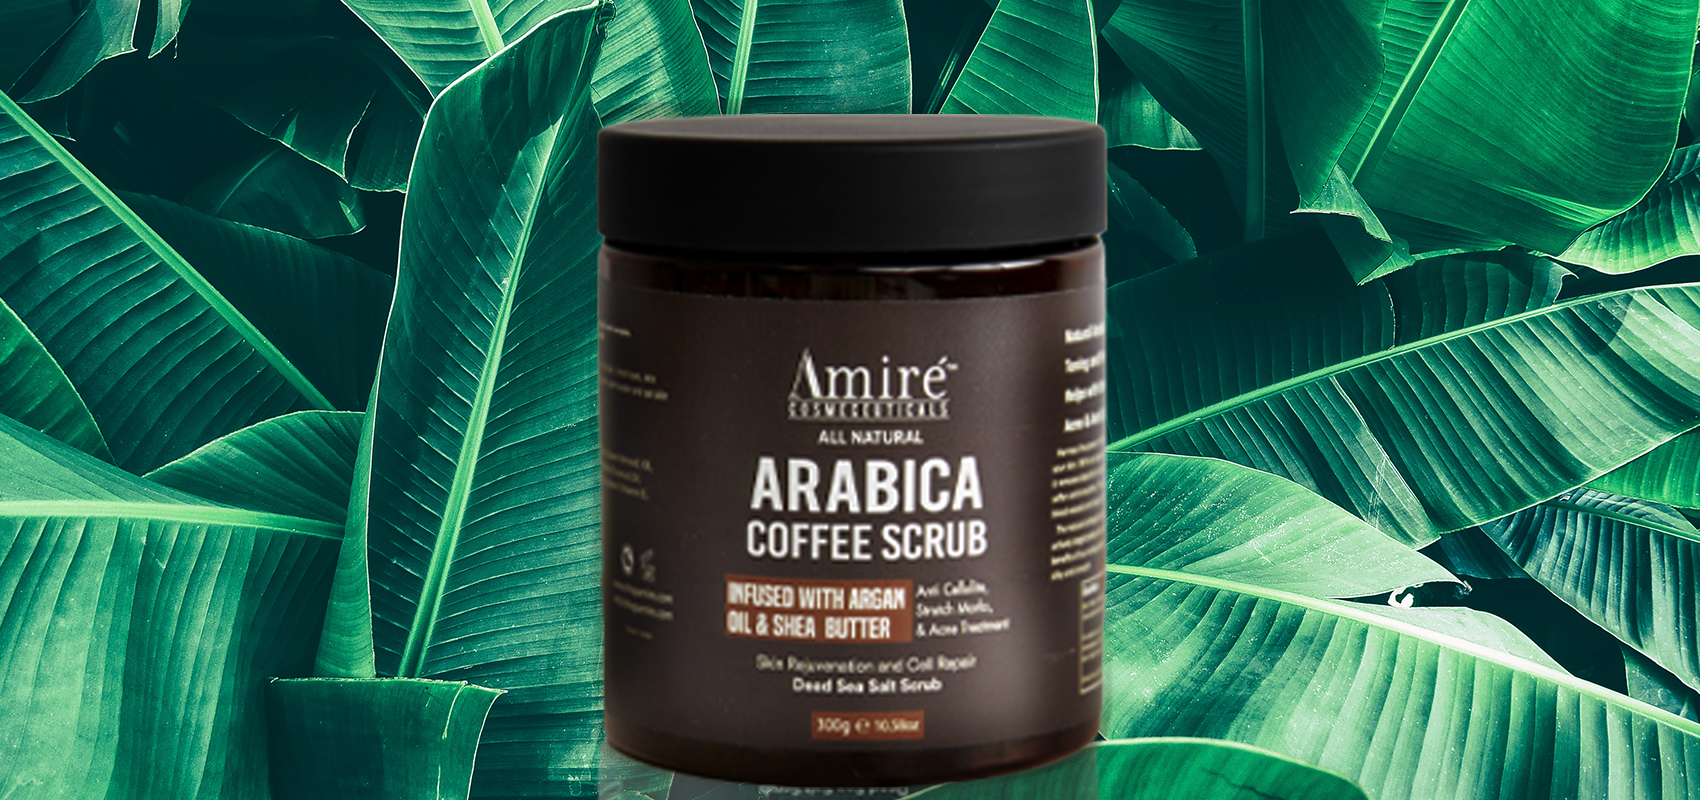 Amire-Coffee-Scrub-Hydrate-Your-Face-and-Body